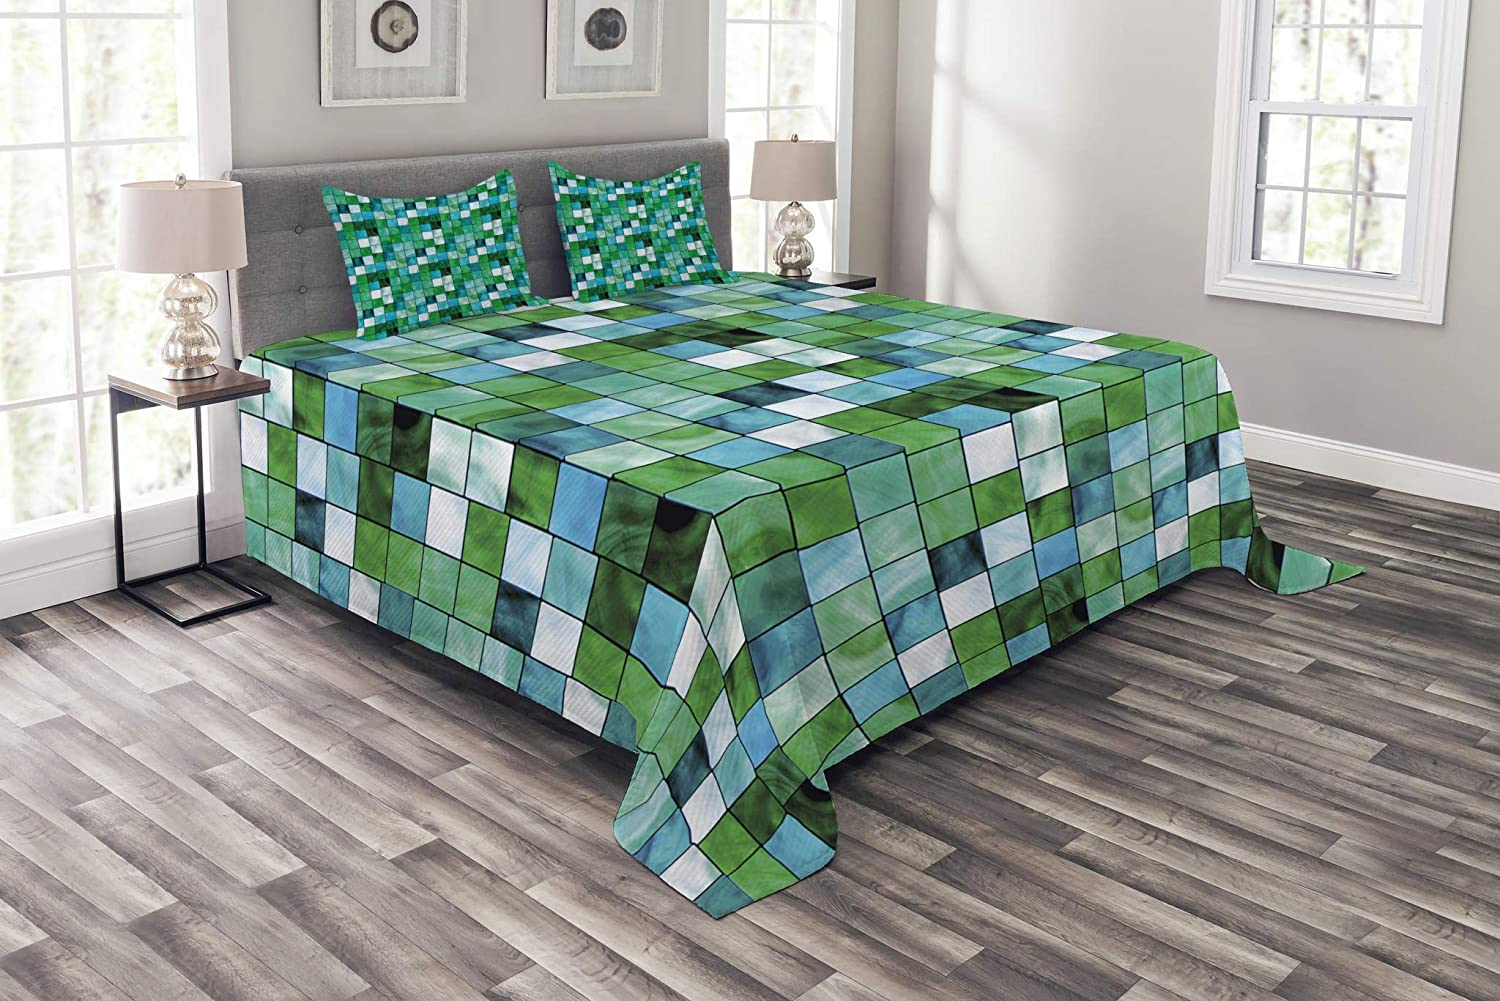 Lunarable Emerald Bedspread Set Queen Size, Geometric Mosaic Squares with Soft Aquatic color Scheme Checkered Tile Pattern, Decorative Quilted 3 Piece Coverlet Set with 2 Pillow Shams, bluee Sea Green